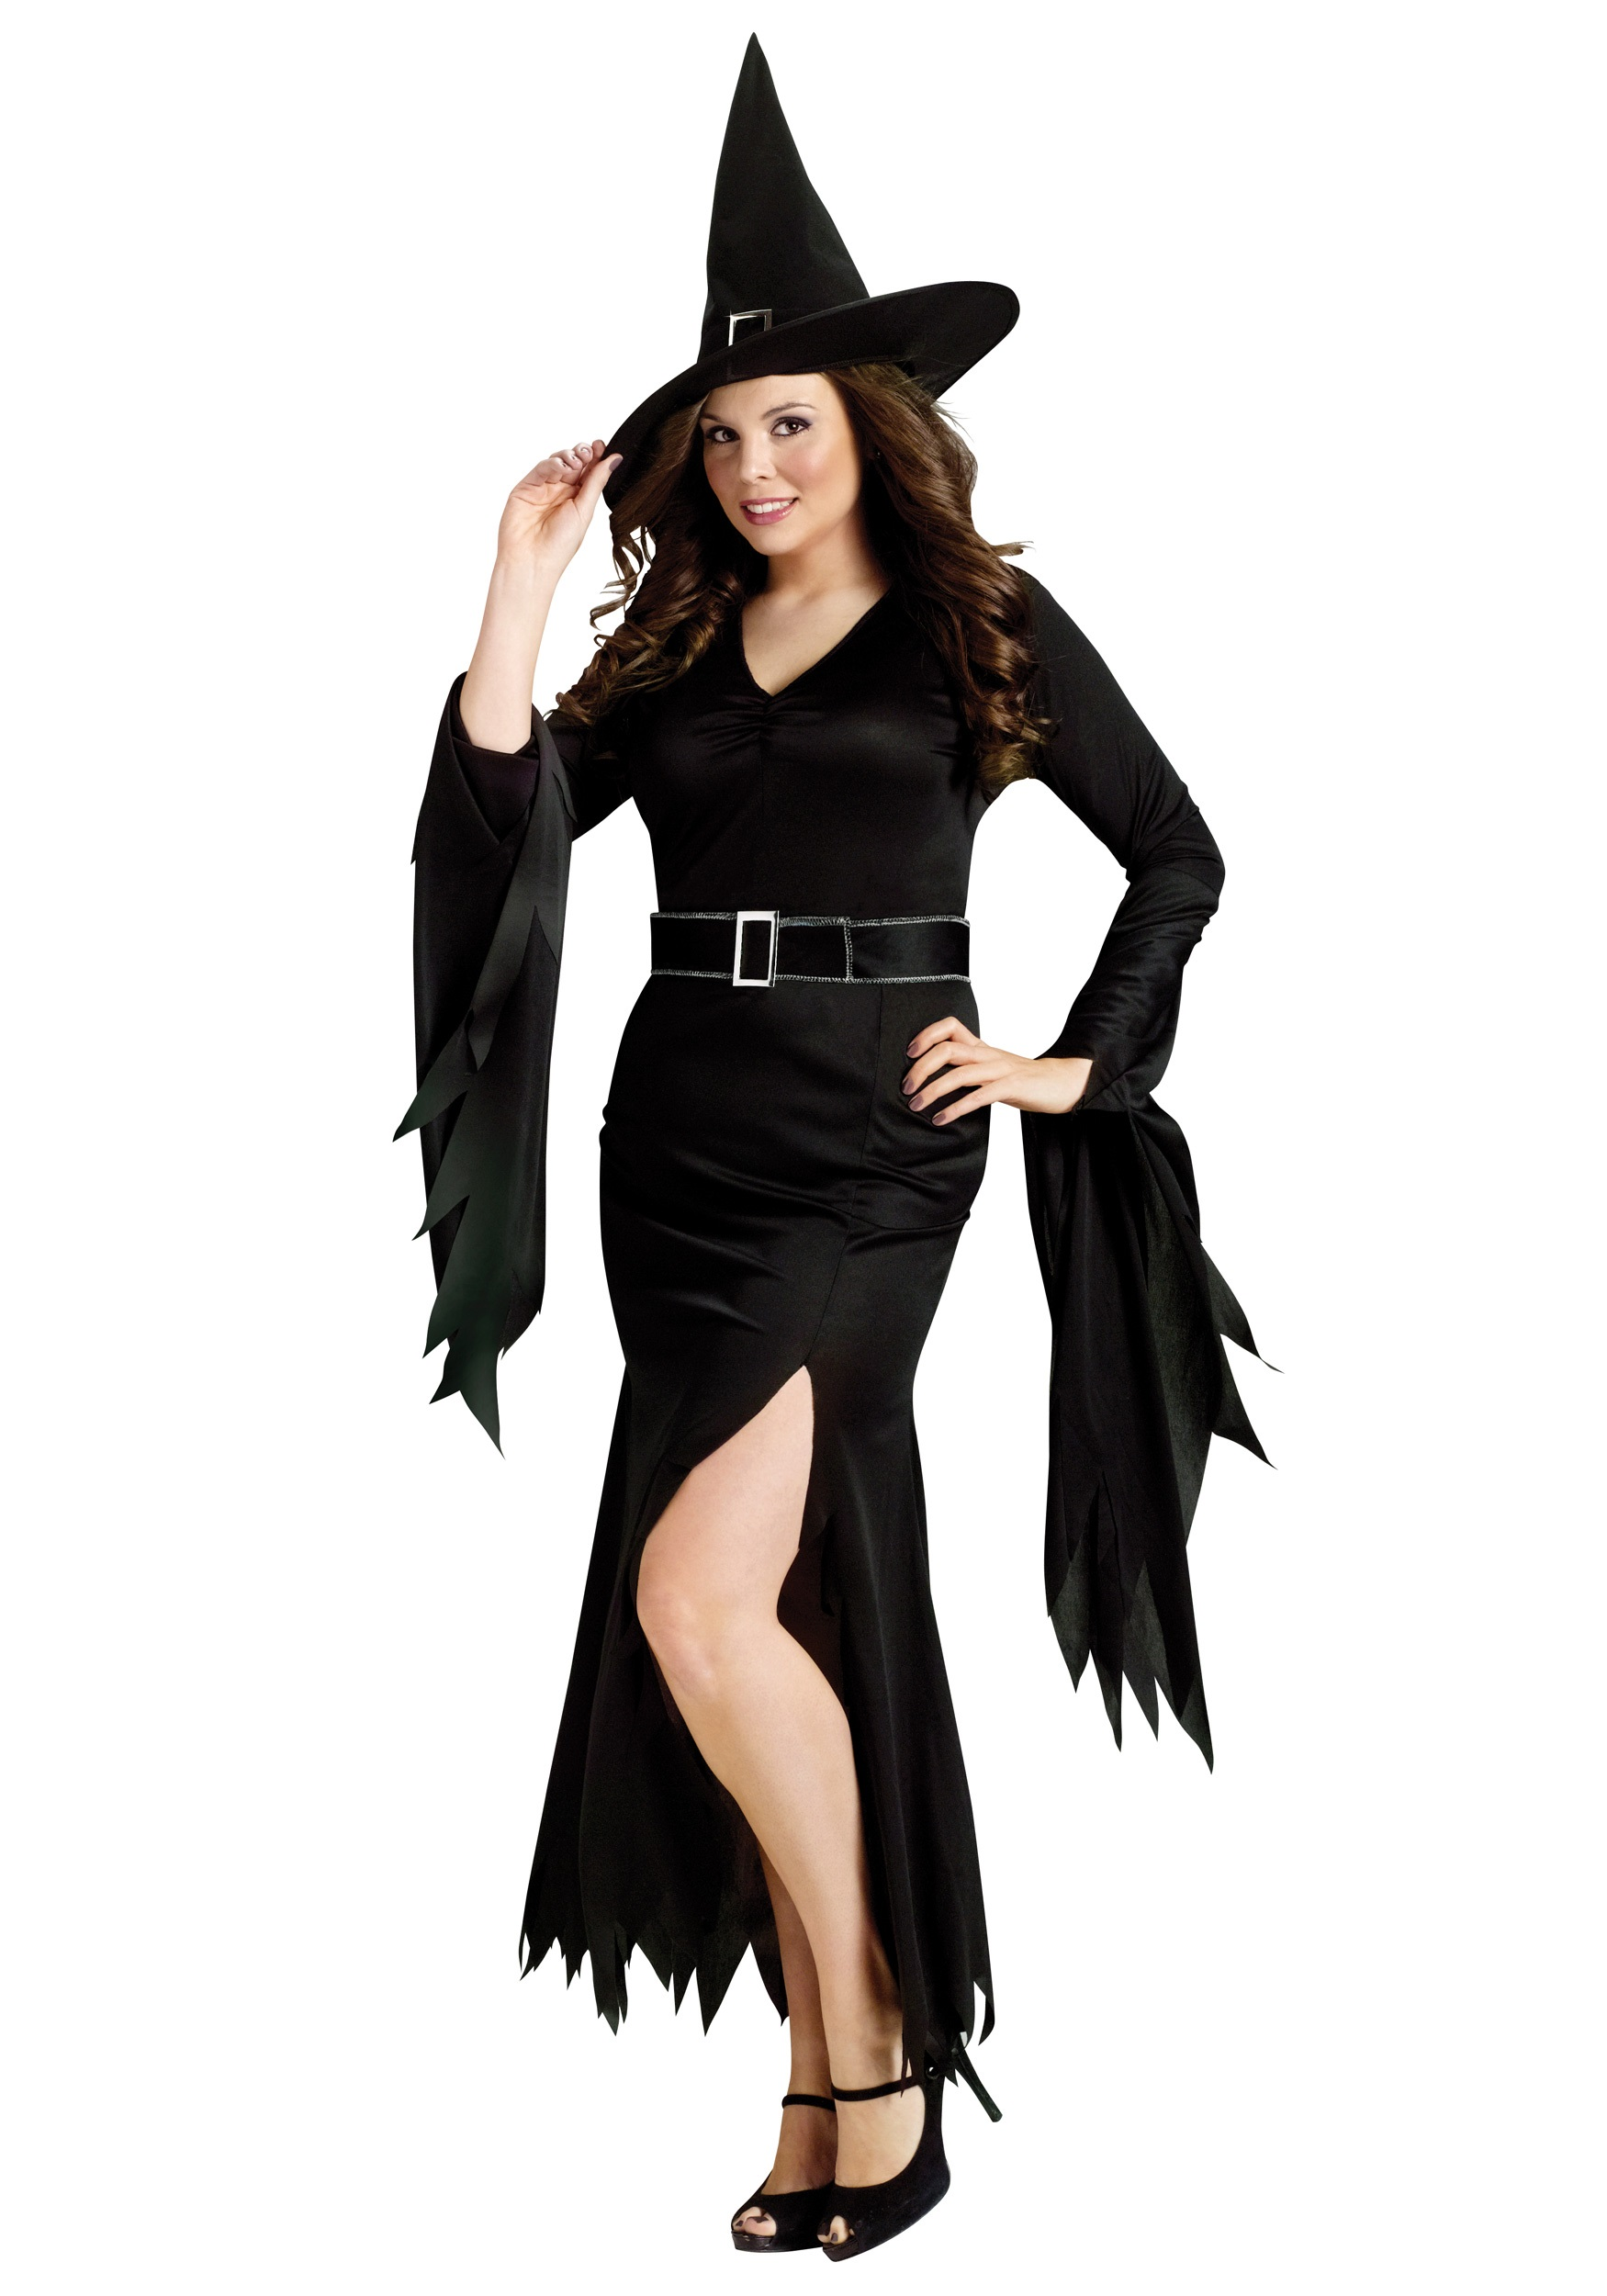 Results 61 - 120 of 273 for Witch Costumes